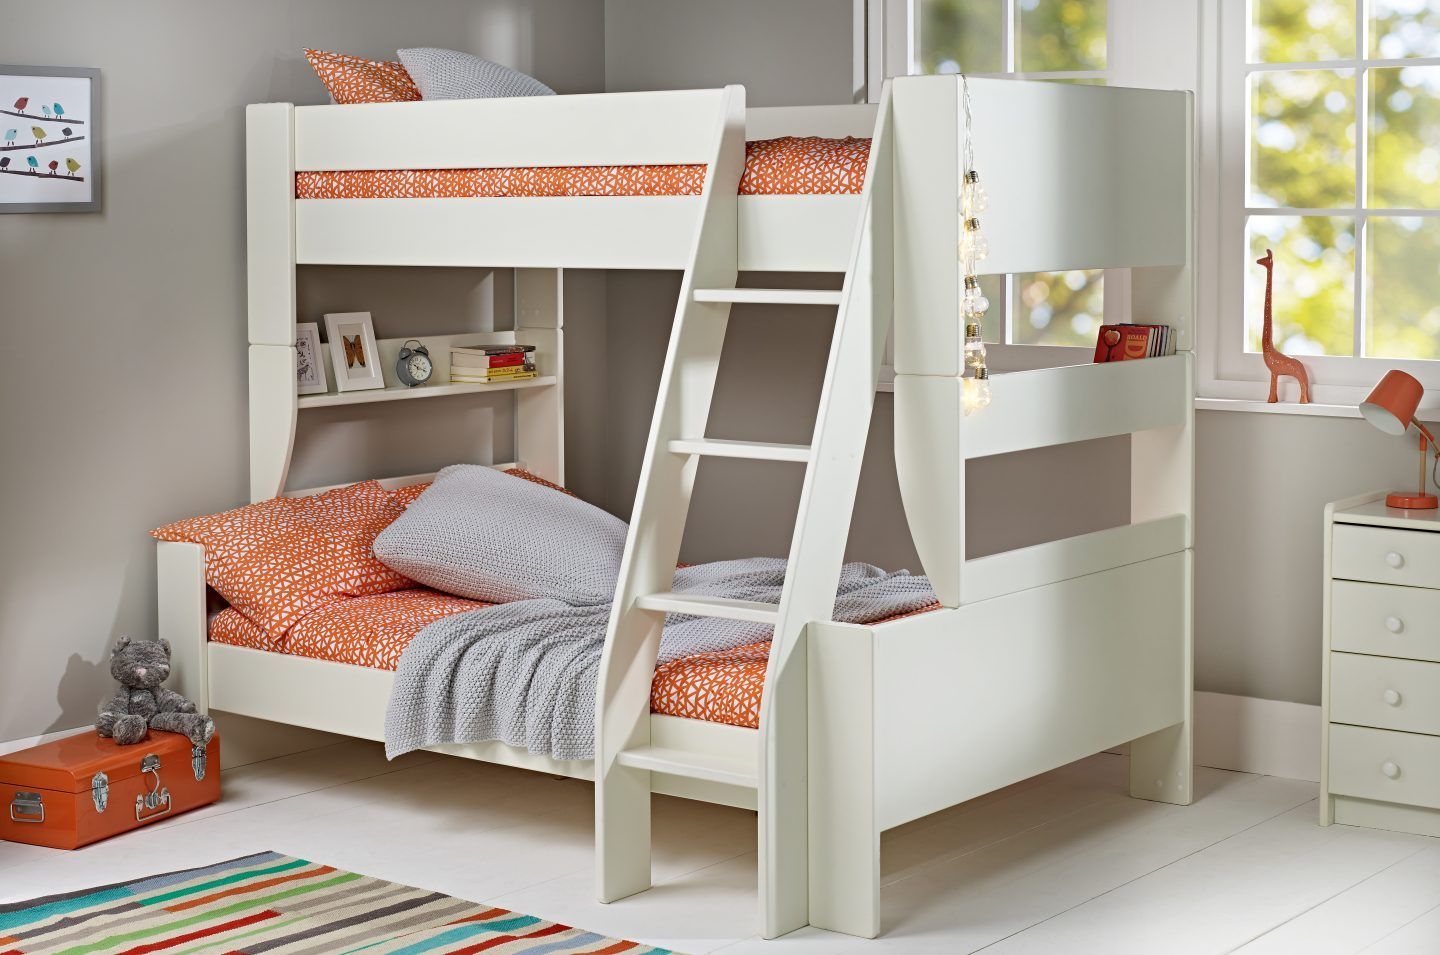 5 Bunk Beds Parents And Kids Will Love Just The Three Of Us